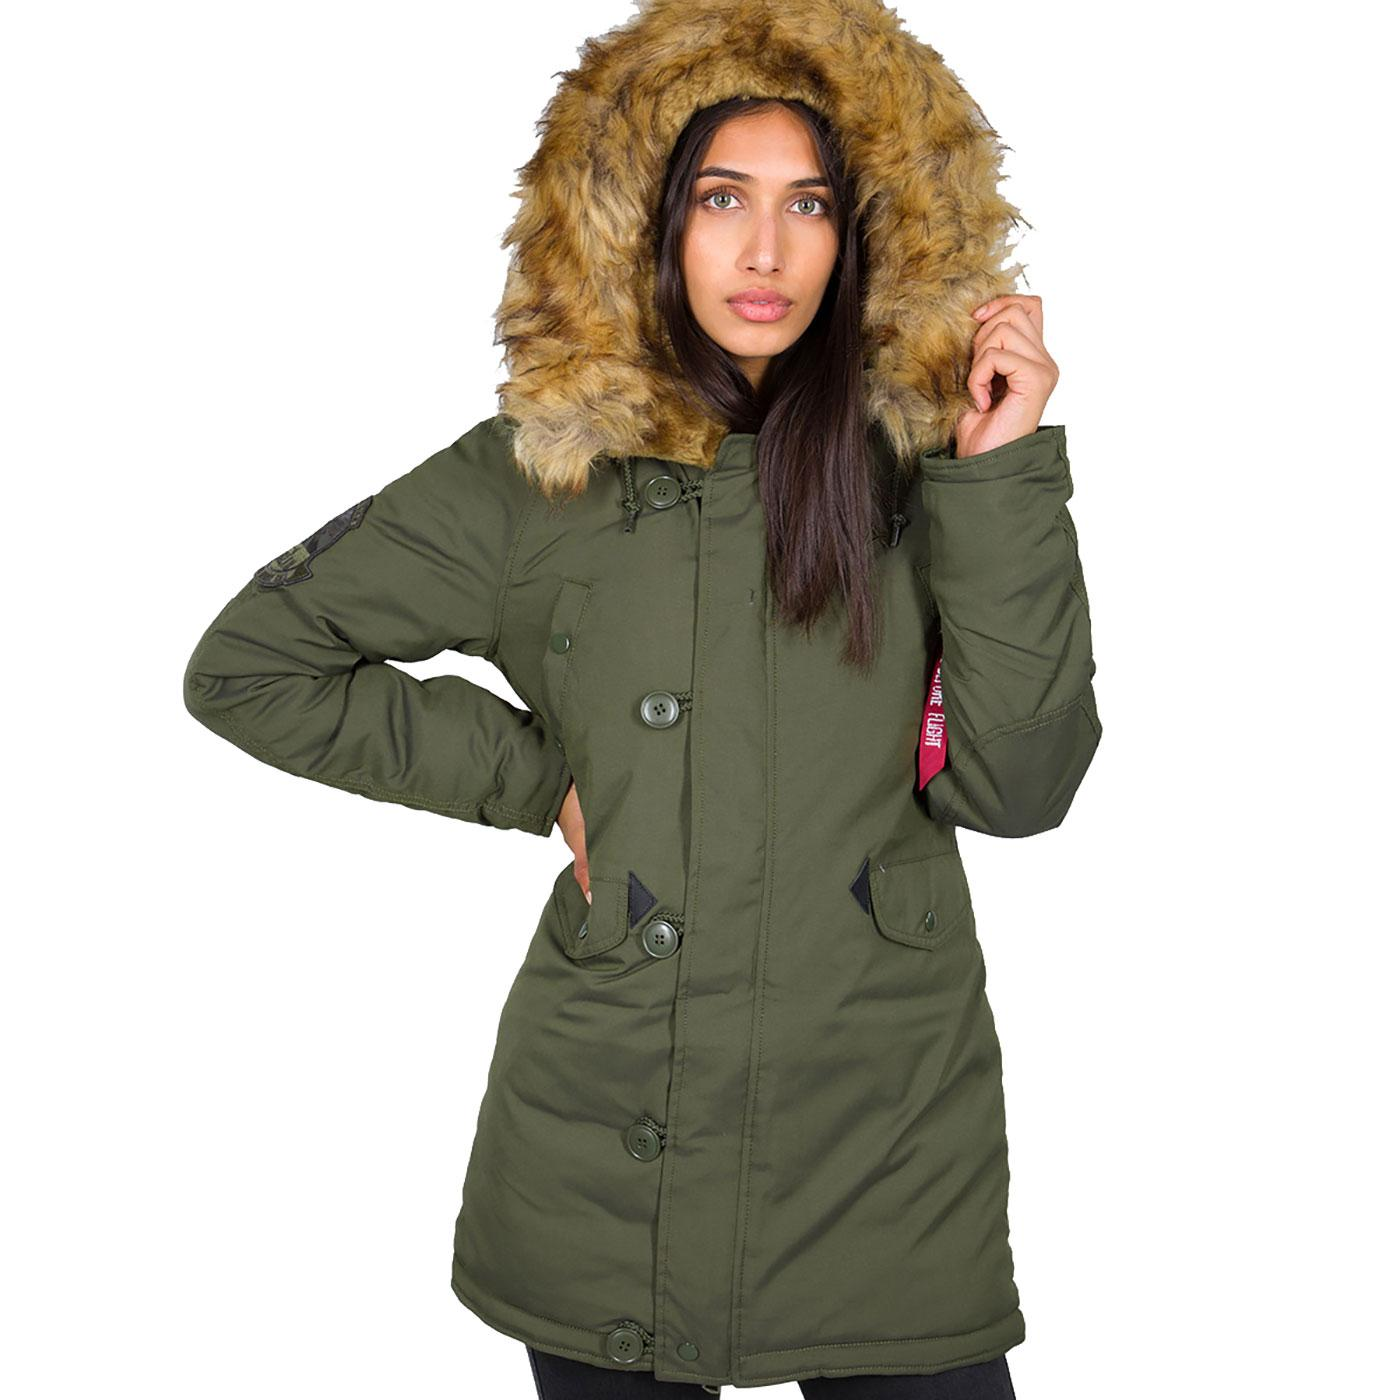 Explorer ALPHA INDUSTRIES Women's Retro Parka DG